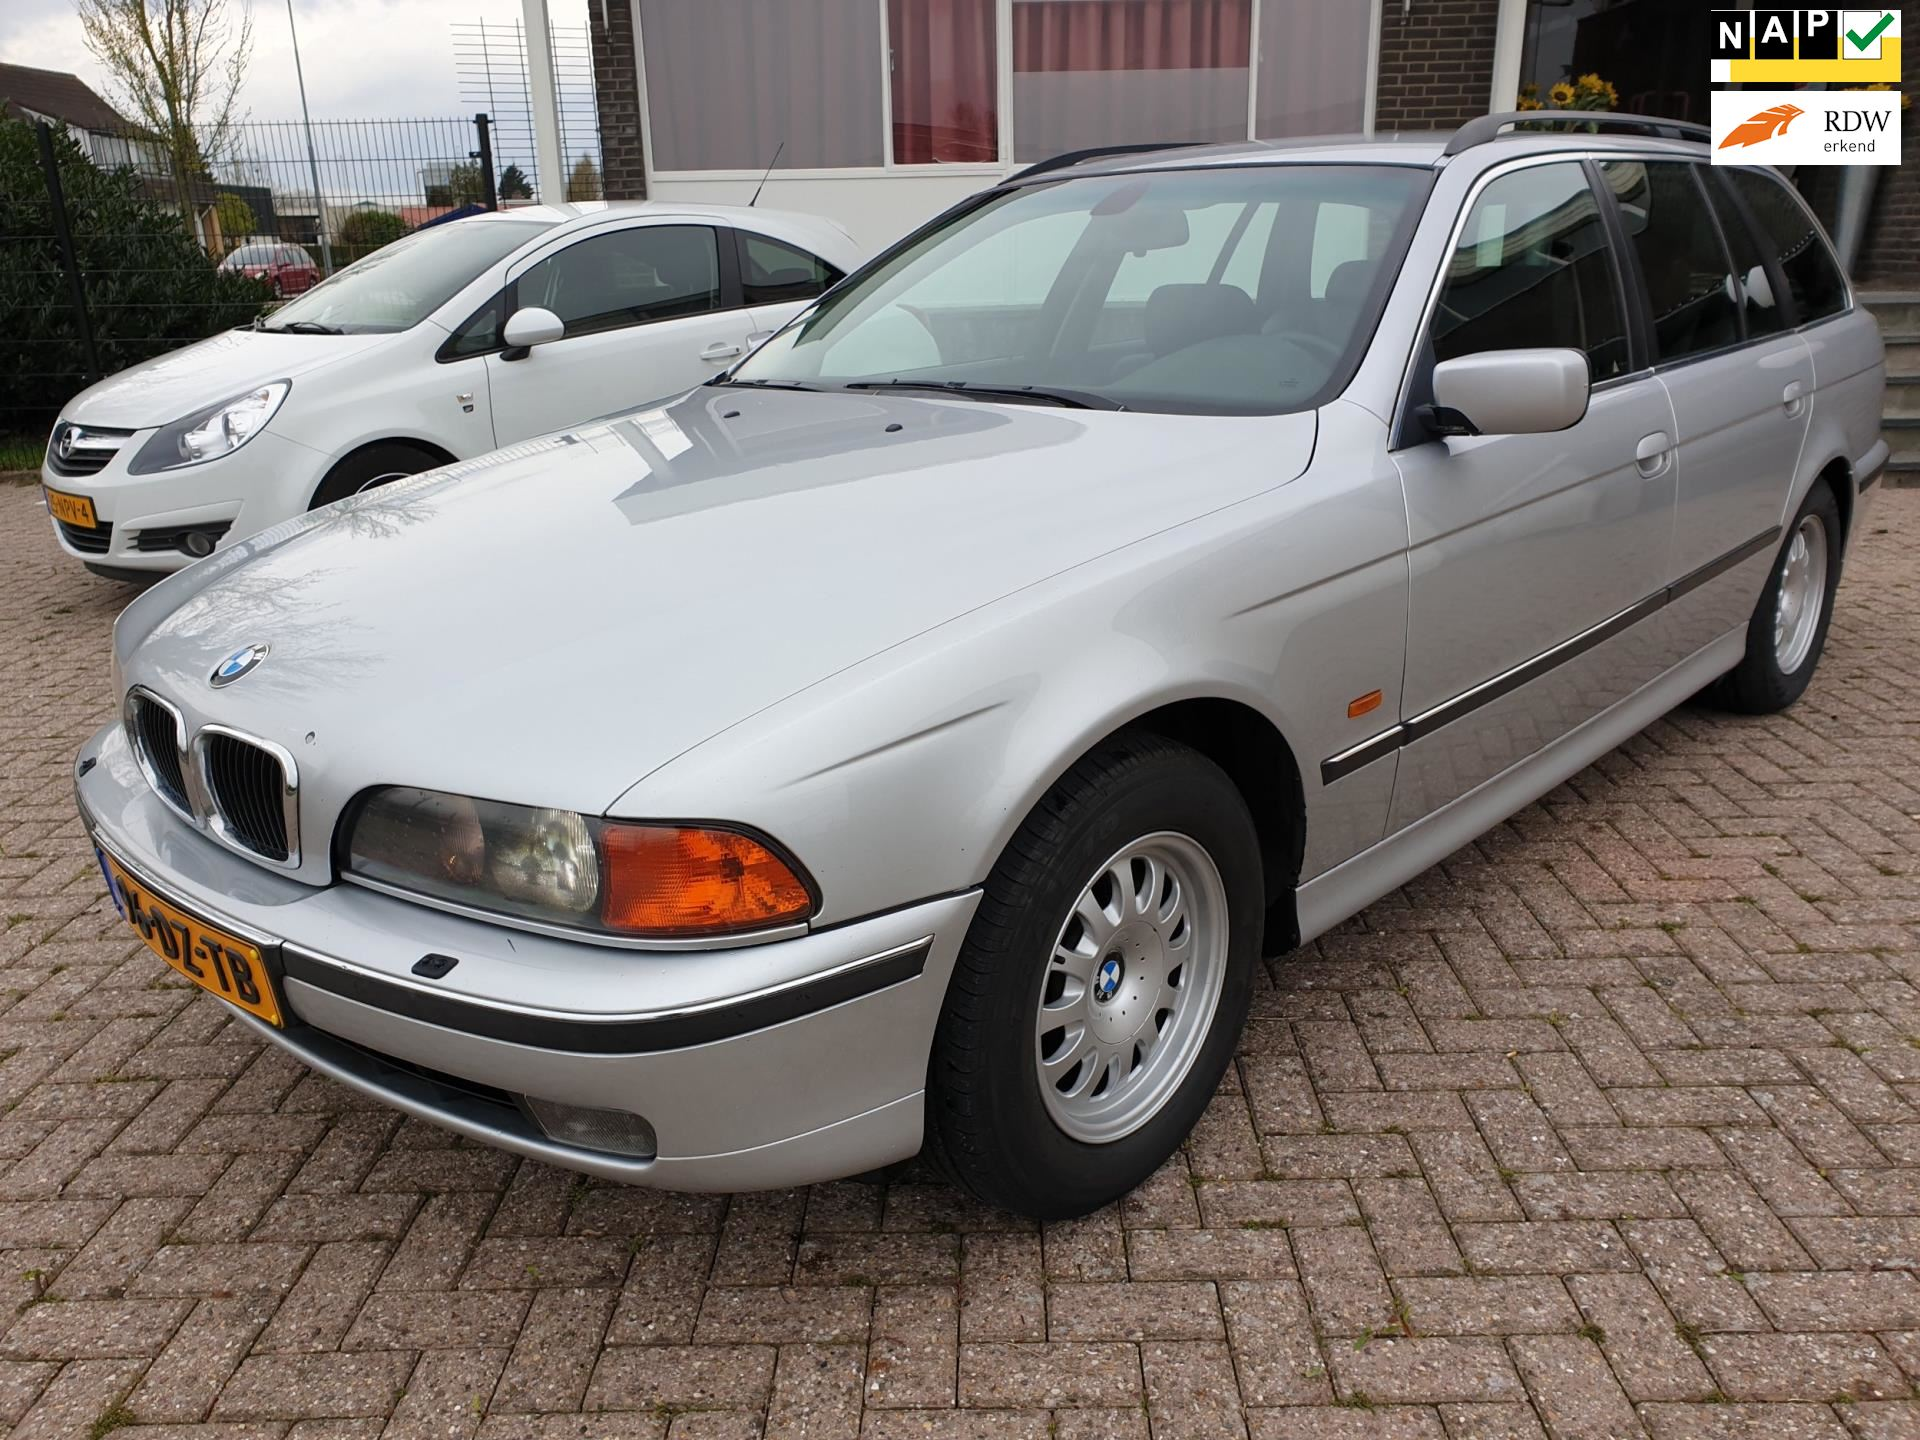 BMW 5-serie Touring occasion - HACO Automotive